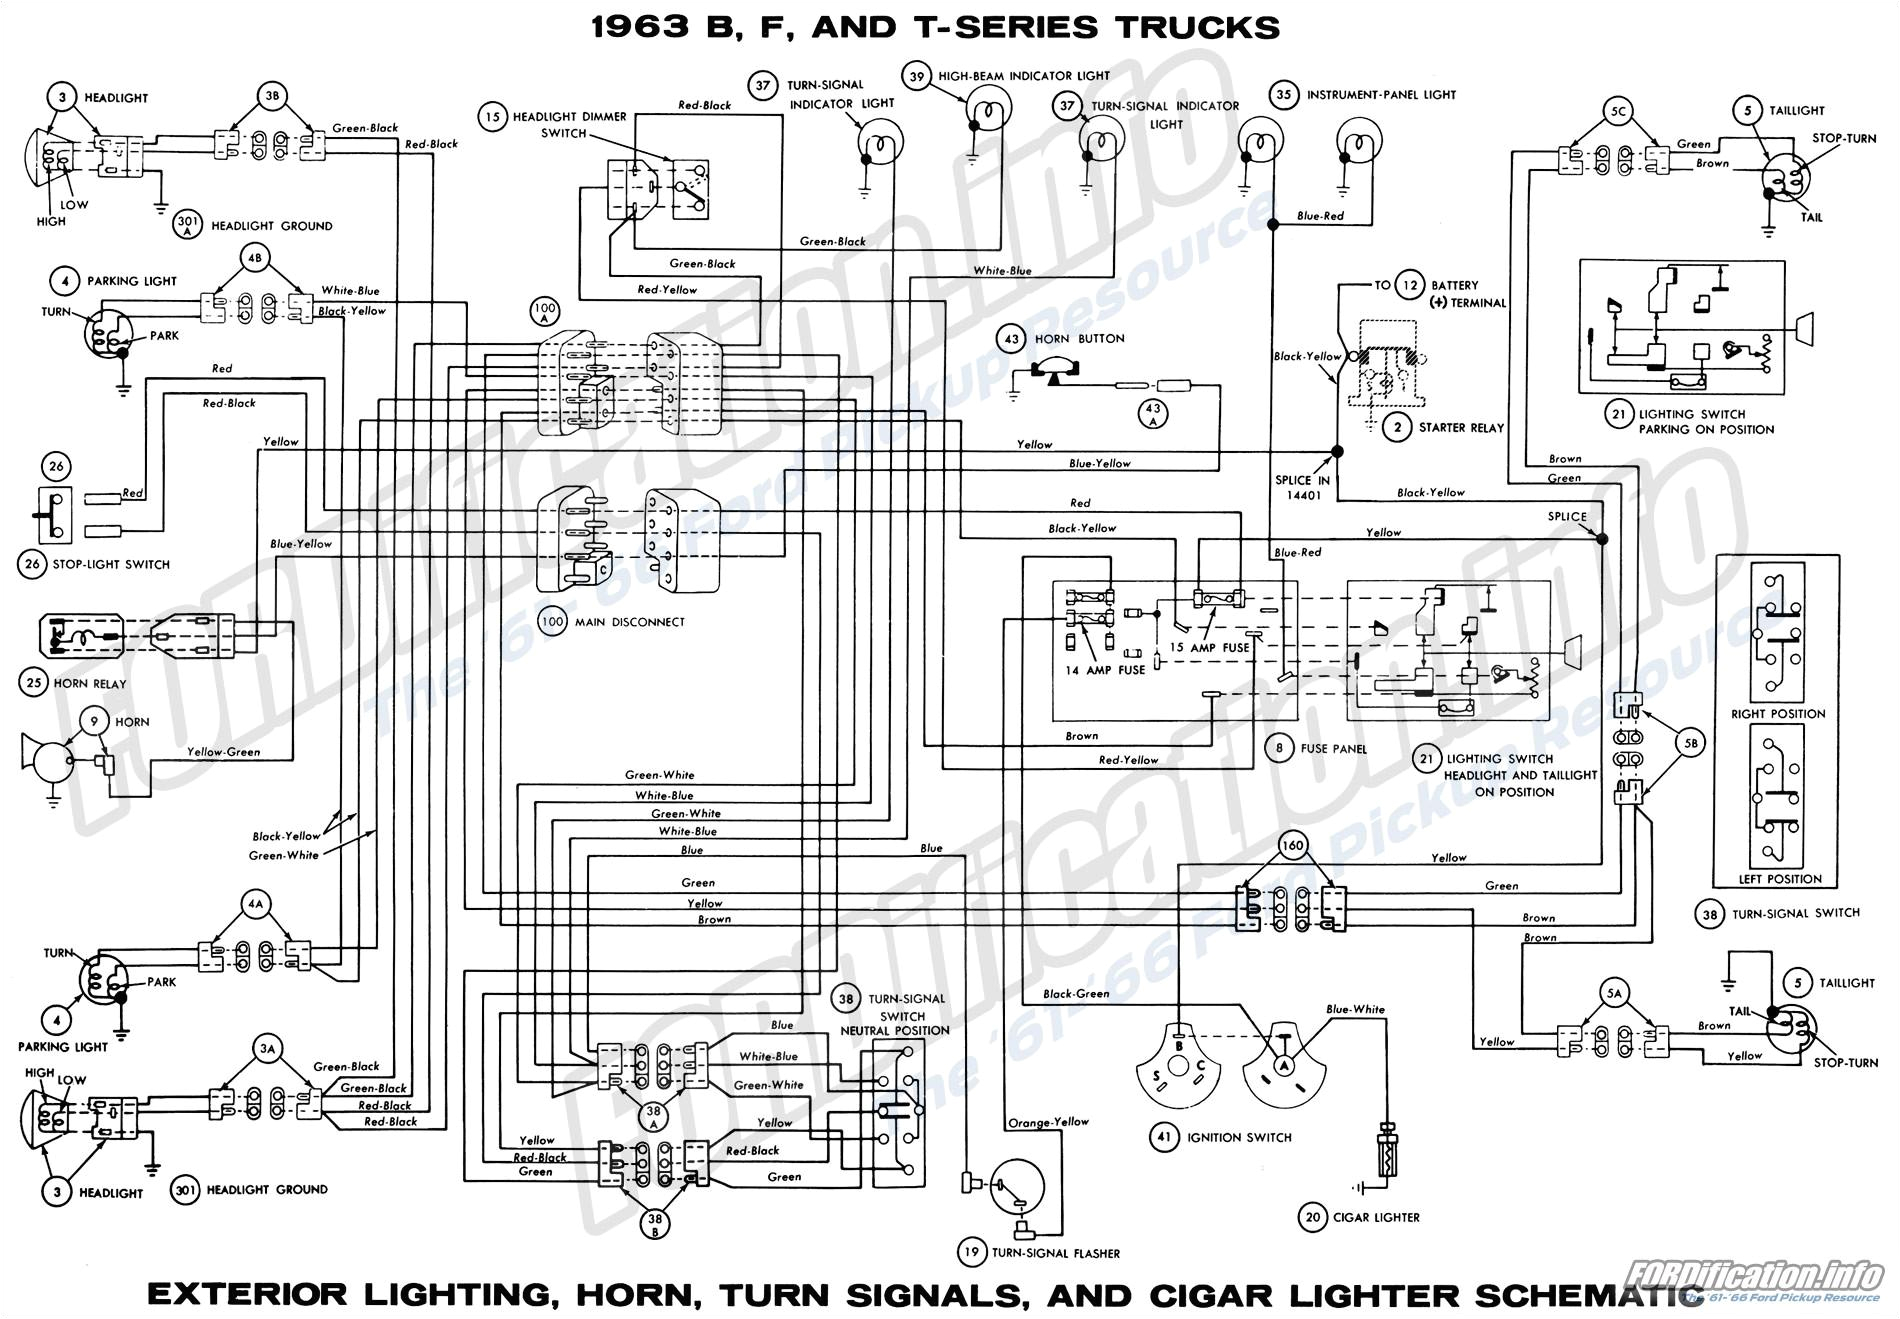 haynes wiring diagrams awesome turn signal wiring diagram lovely jcb 3 0d 4 4 3 5d 4 4 teletruk types jpg